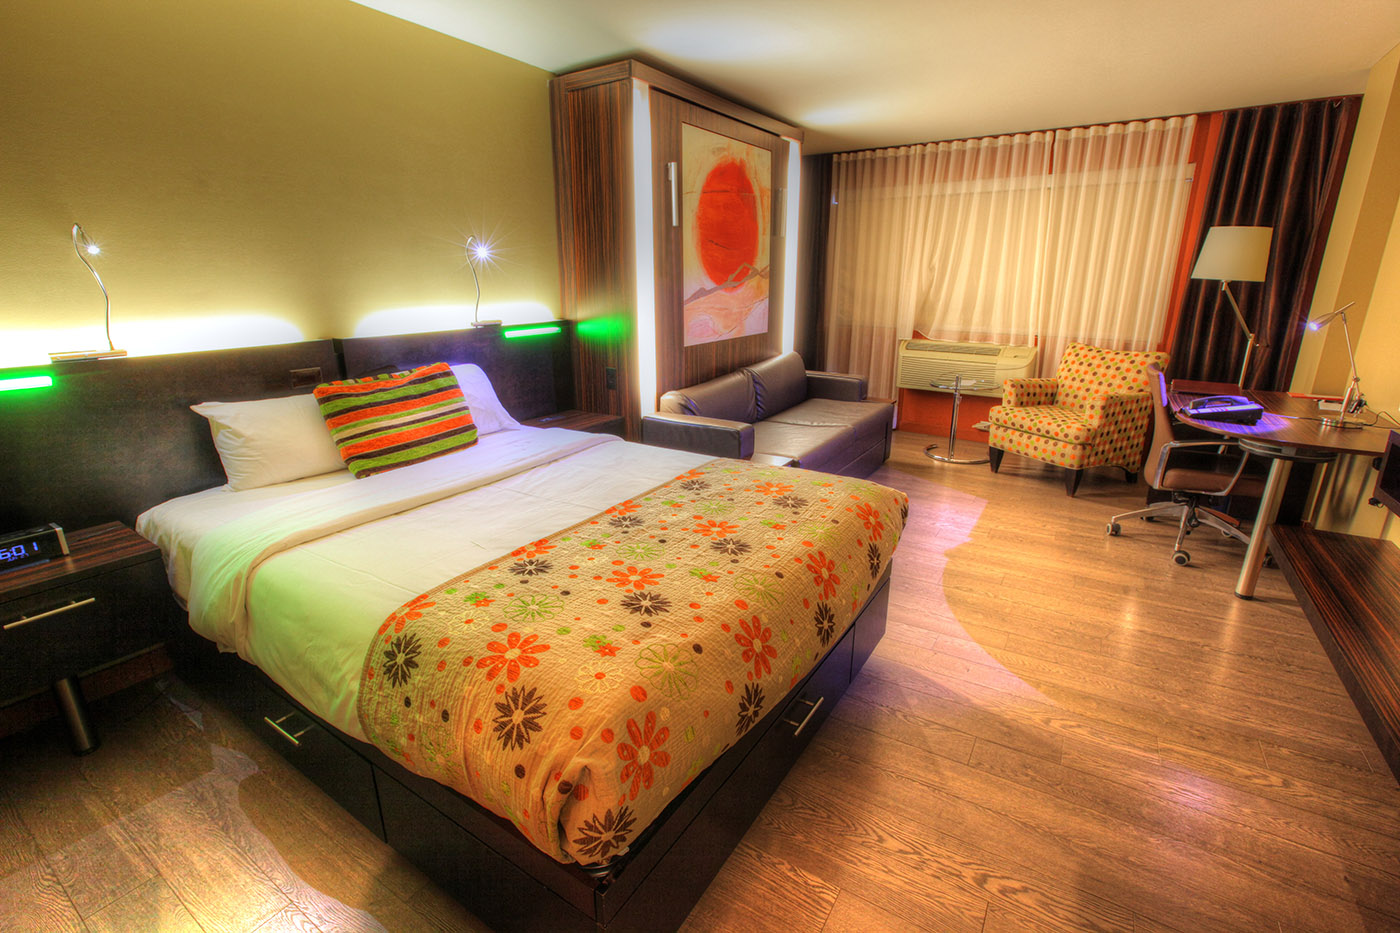 Colorful Hotel Room - Stock Photography